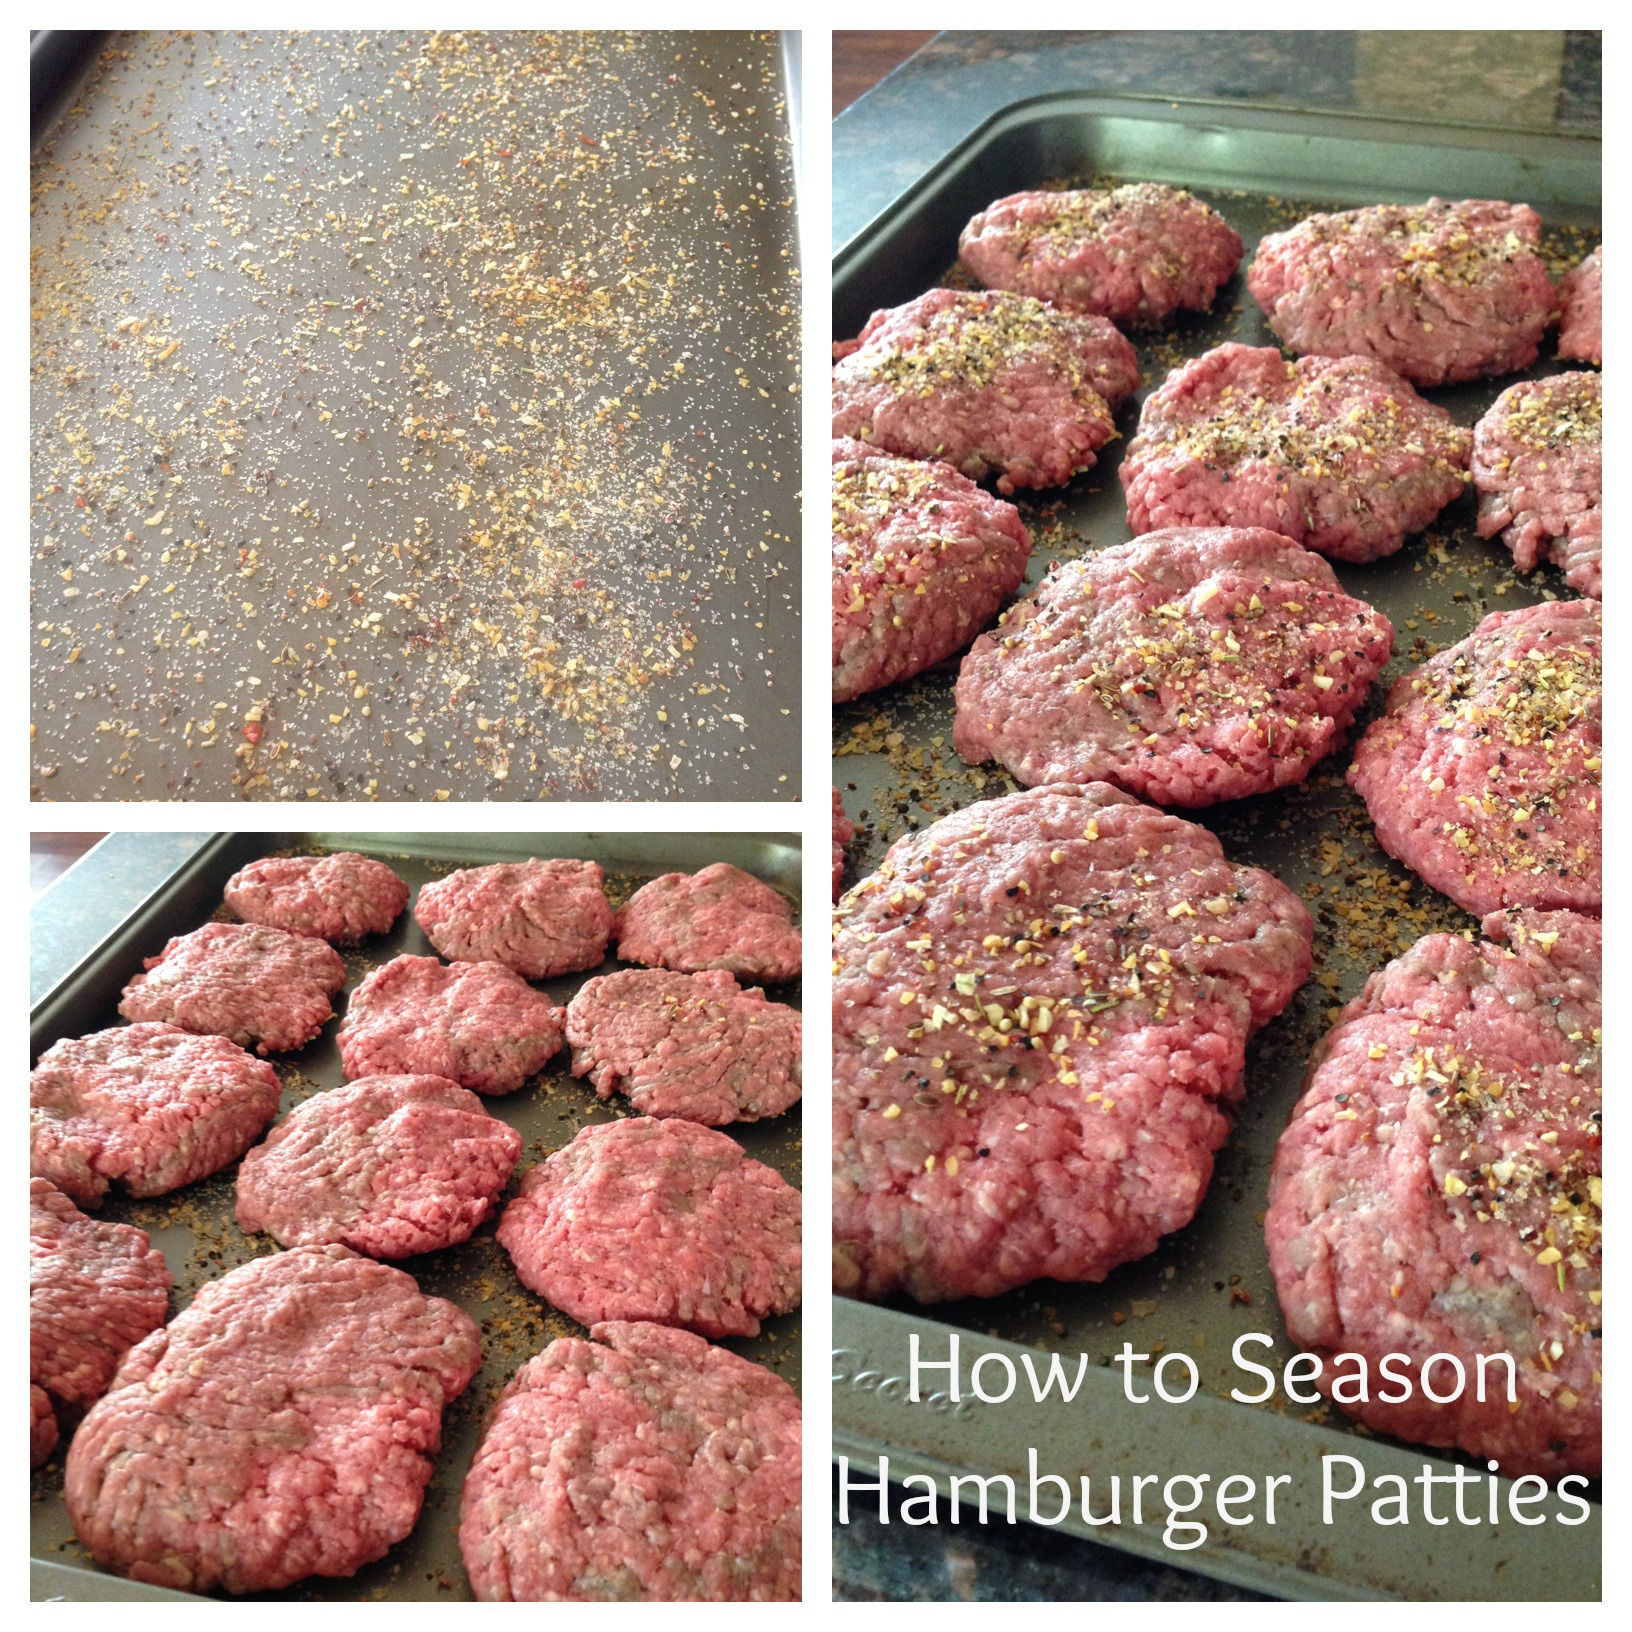 How To Season Hamburger Patties 5 Dinners Recipes Meal Plans Coupons